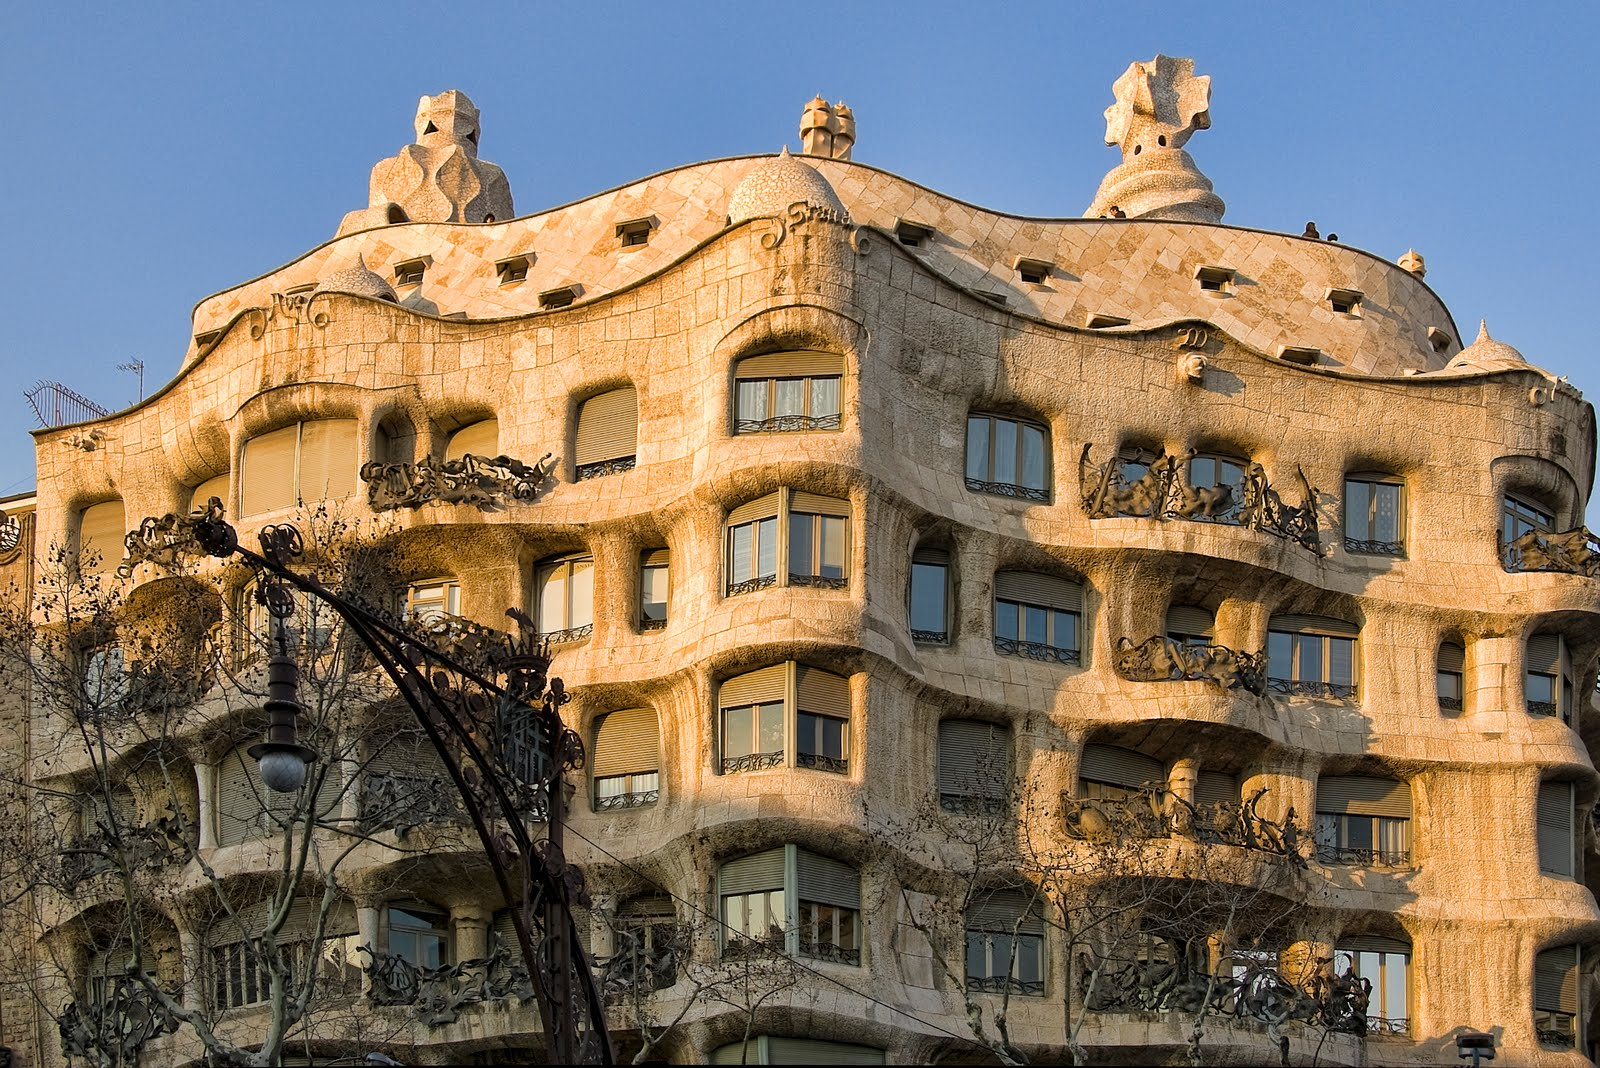 Casa Mil  Public Building in Barcelona  Thousand Wonders